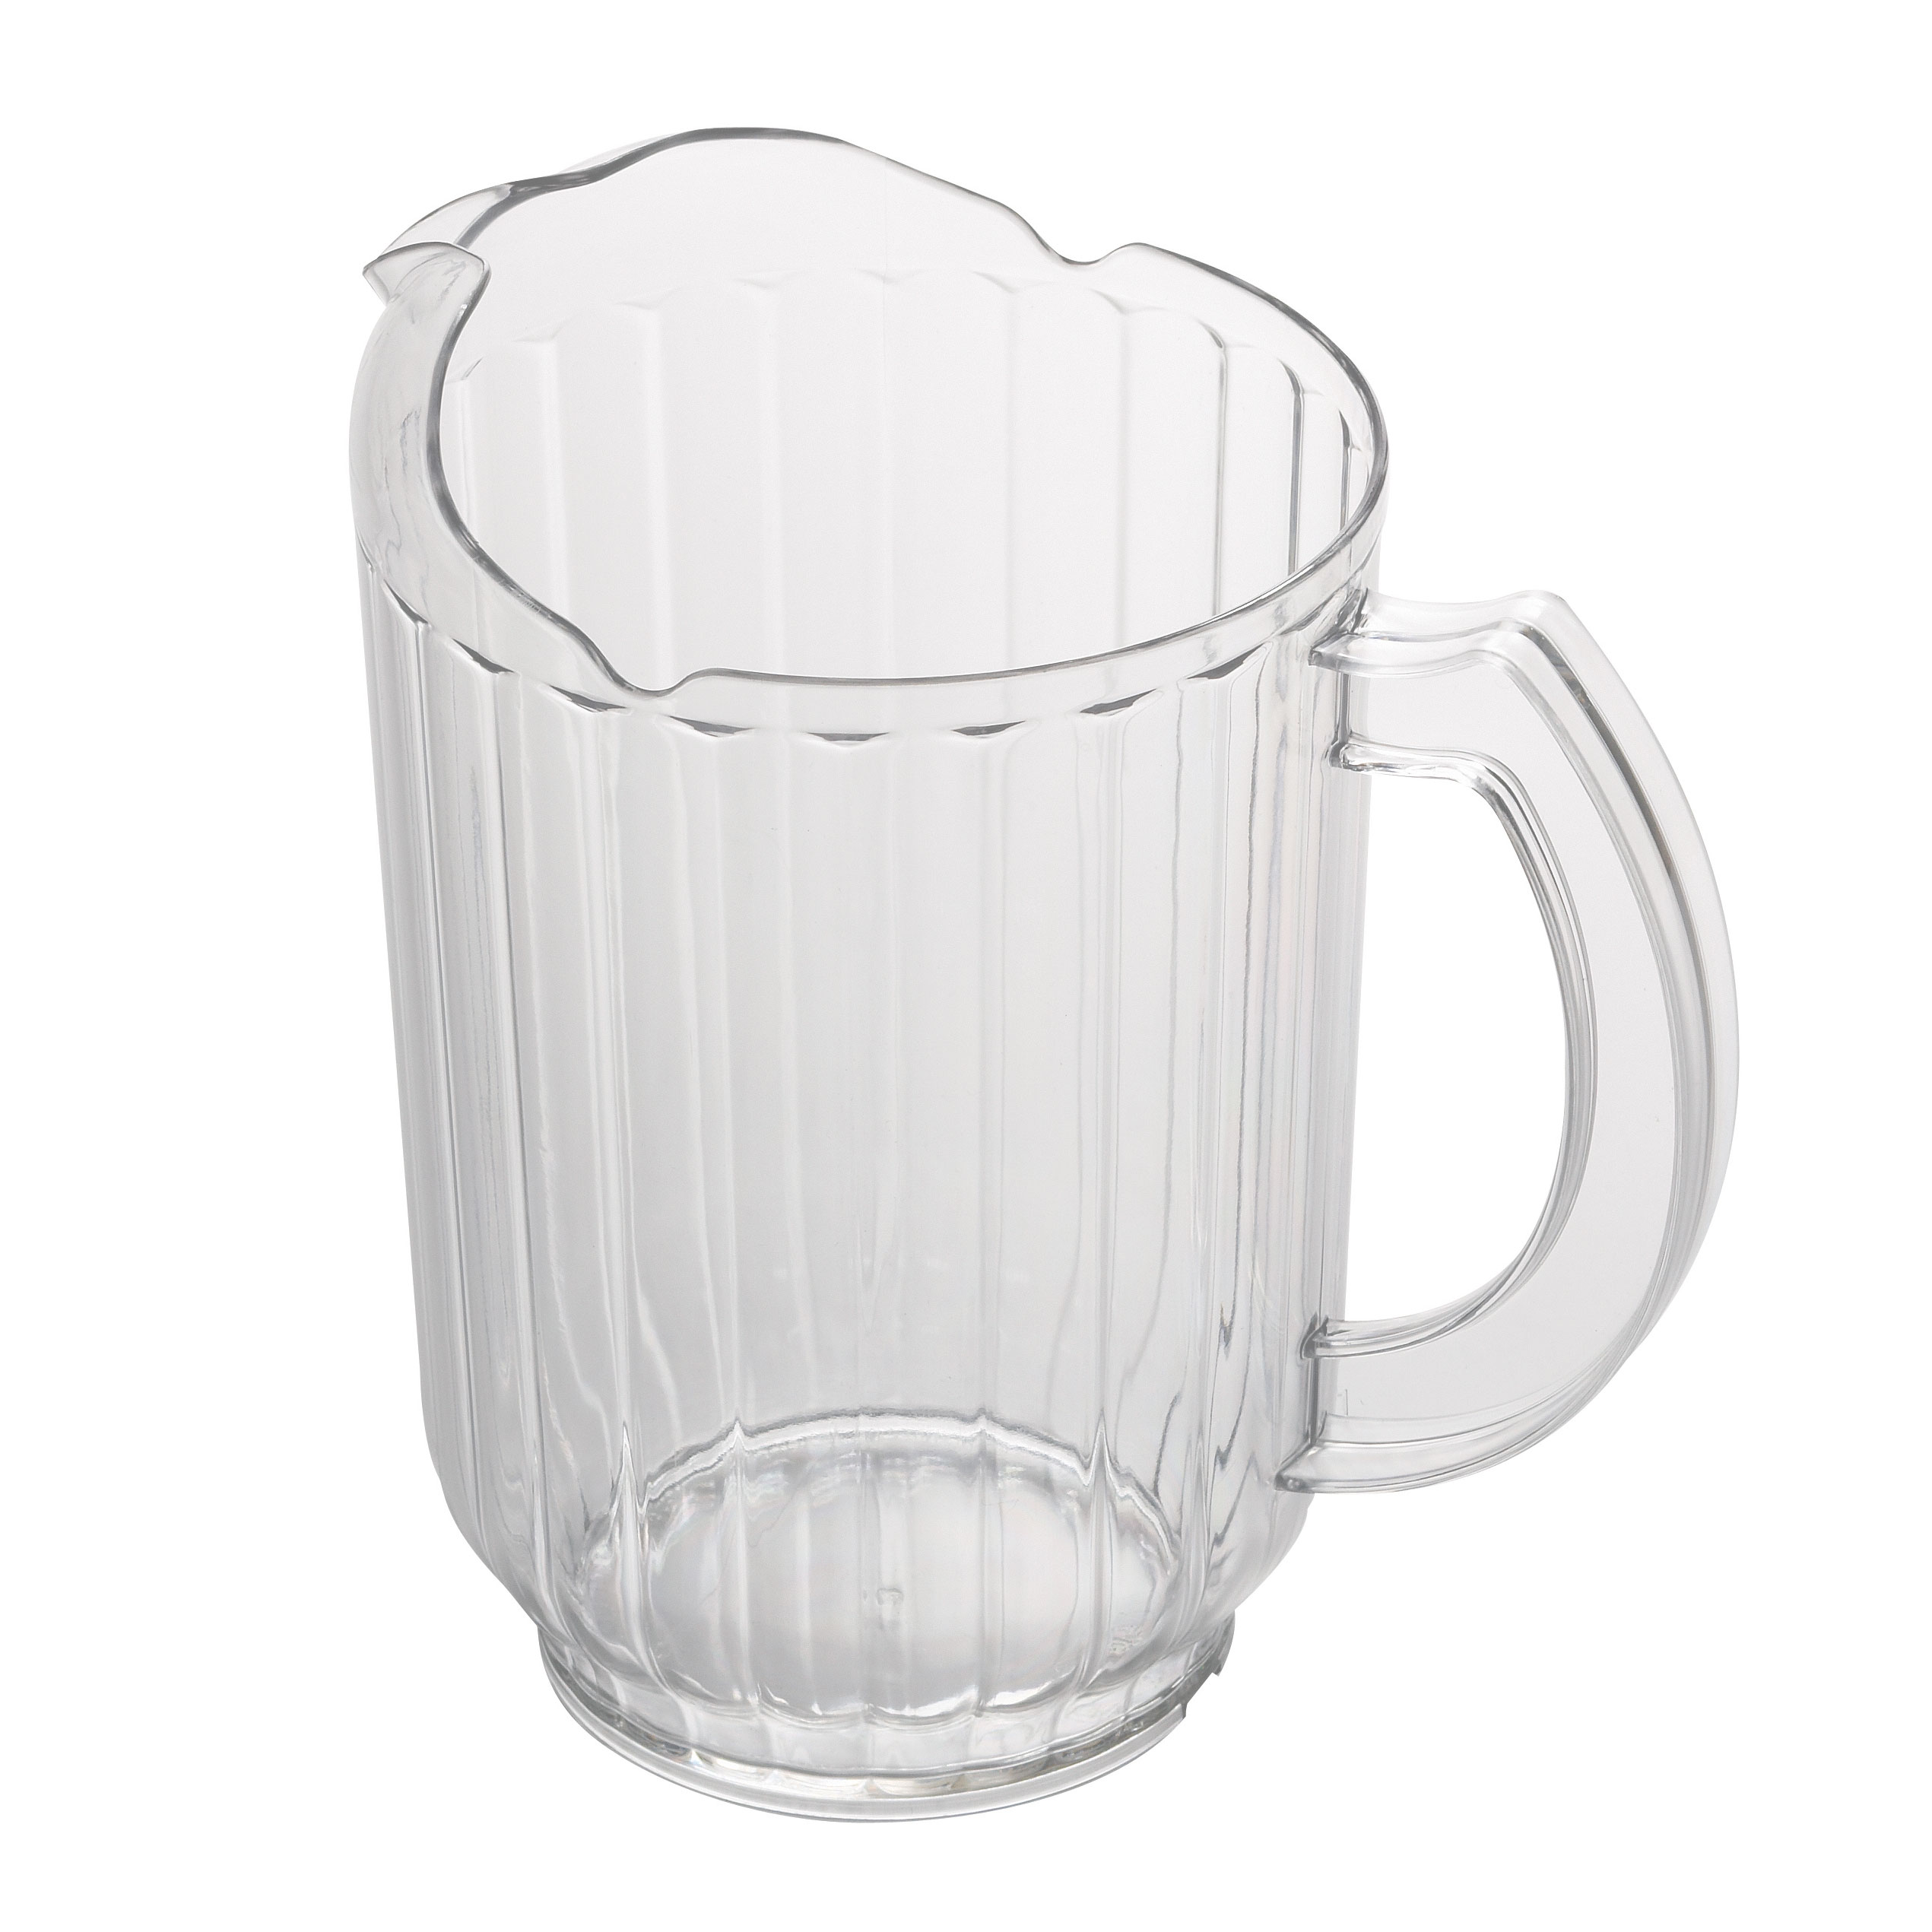 Cambro PE600CW135 decanters/pitchers